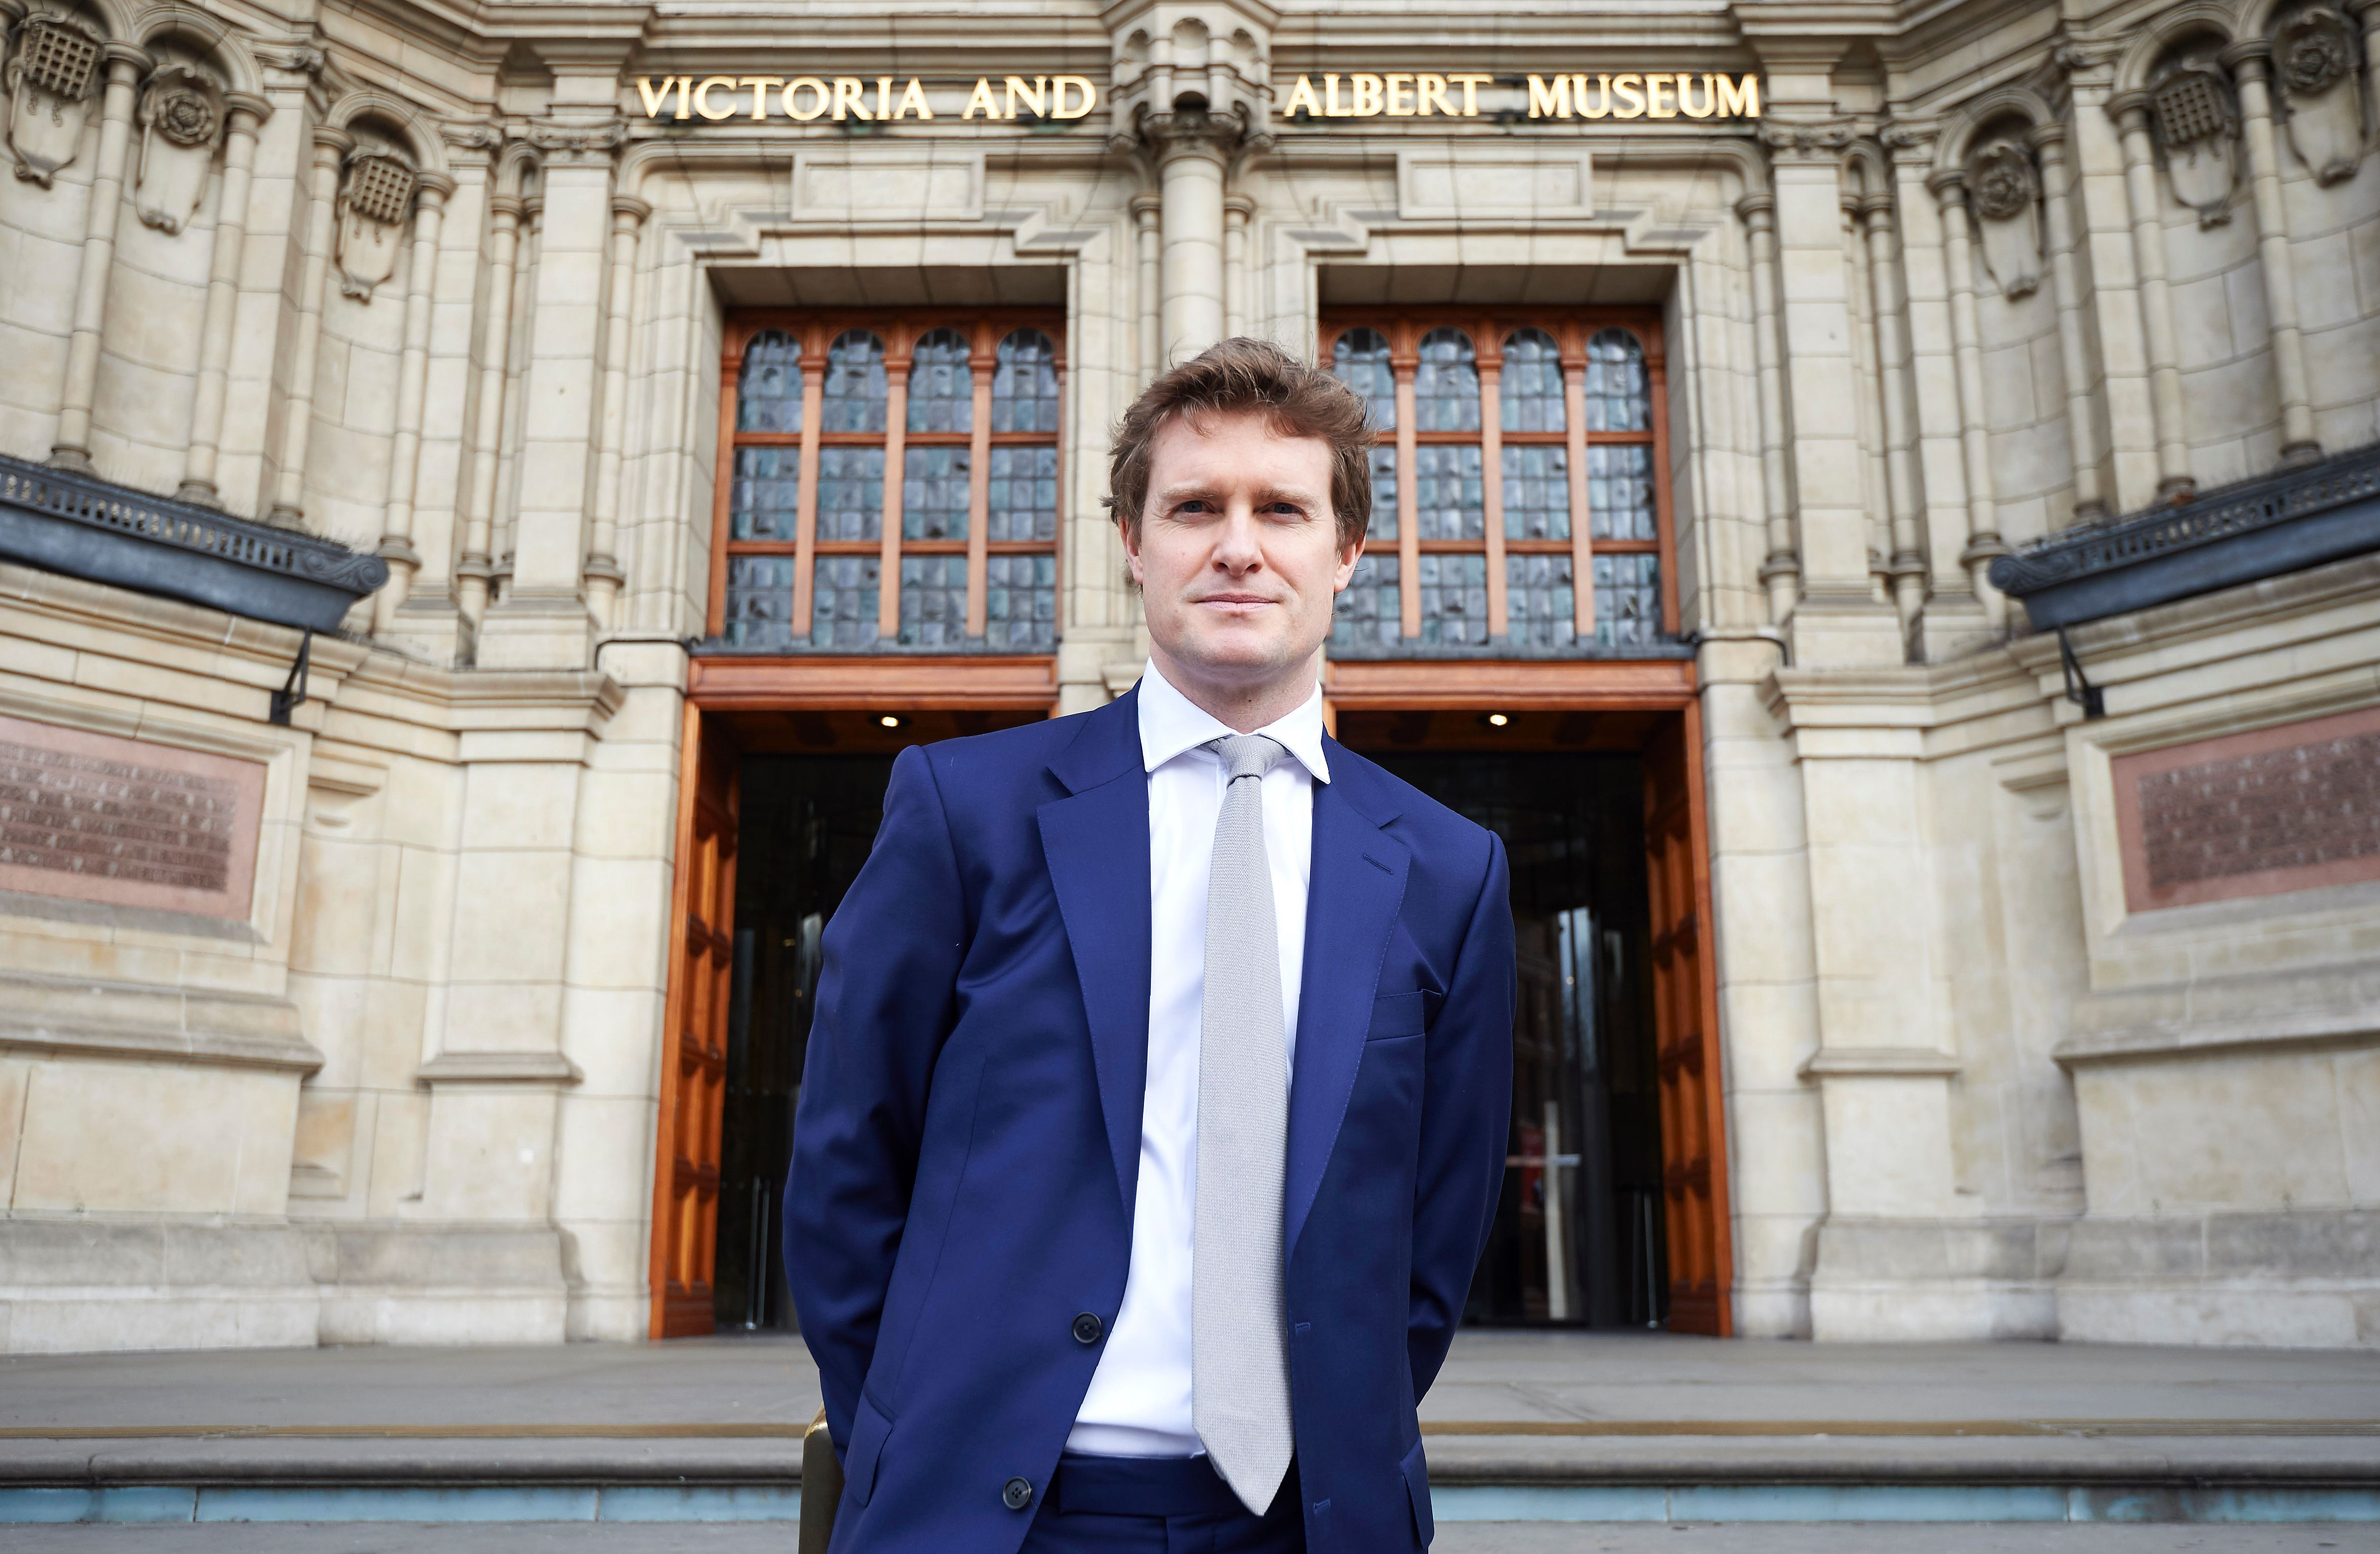 The Victoria & Albert Museum's newly appointer Director, Tristram Hunt, poses for photographers during a photocall outside the museum in London on February 20, 2017. / AFP / NIKLAS HALLE'N        (Photo credit should read NIKLAS HALLE'N/AFP/Getty Images)